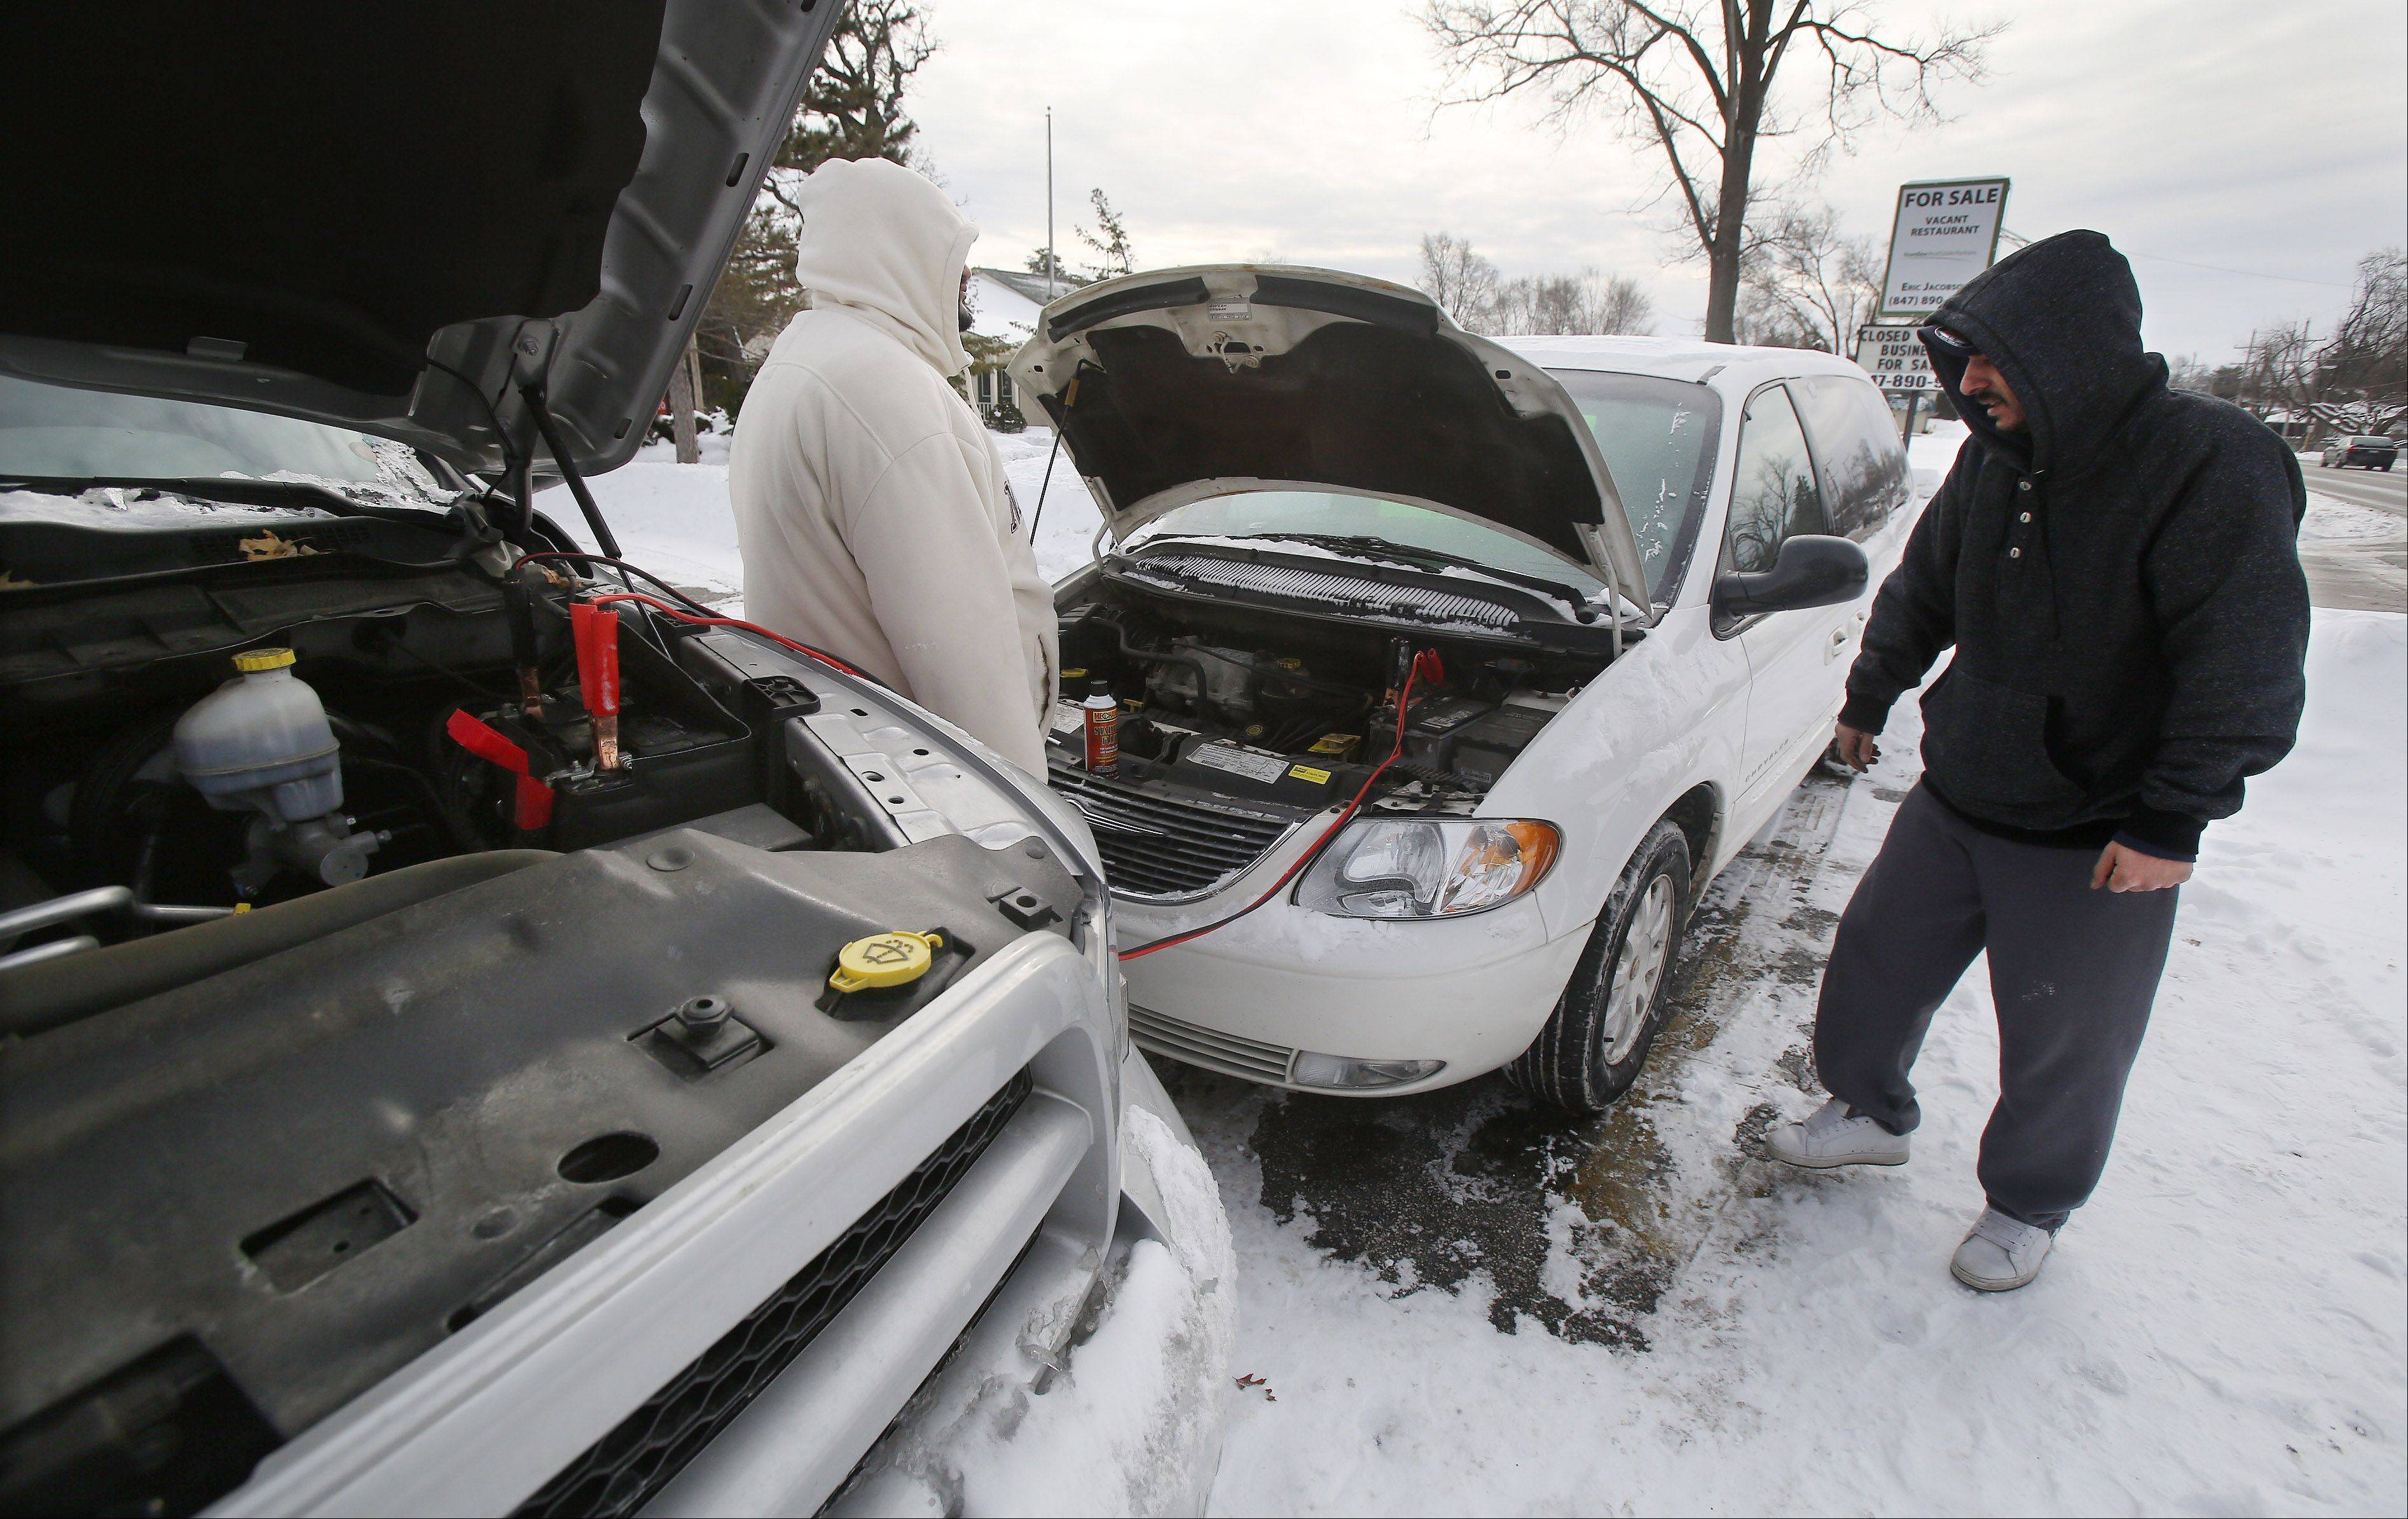 Gilbert R. Boucher II/gboucher@dailyherald.comBrothers Jimmy and Angelo Prier, right, try to jump start their car in Grayslake during the brutal cold on Tuesday.